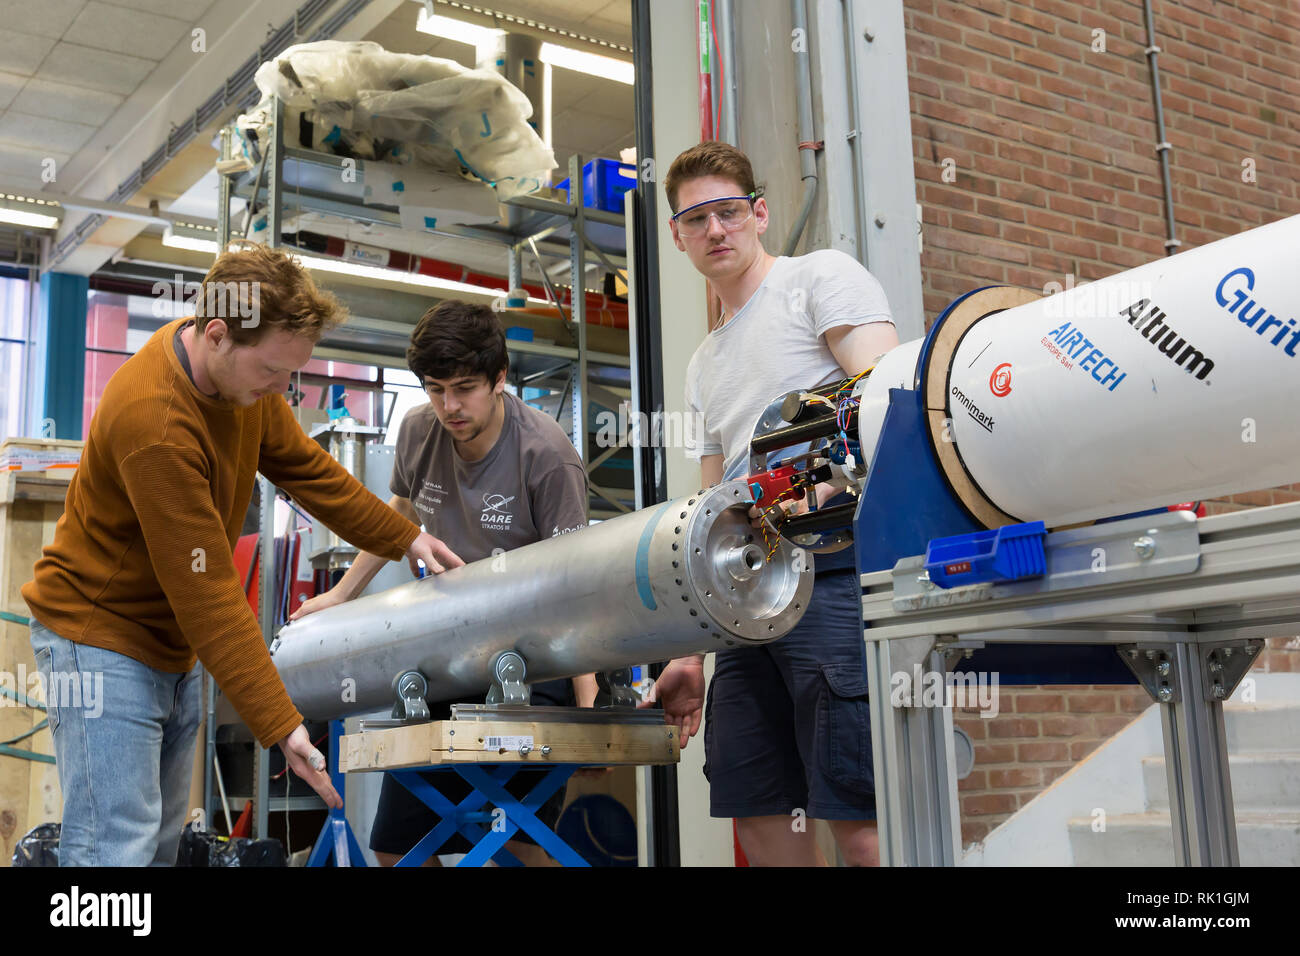 Aerospace engineering students of the Technical University of Delft working on their rocket, the Stratos III - Stock Image